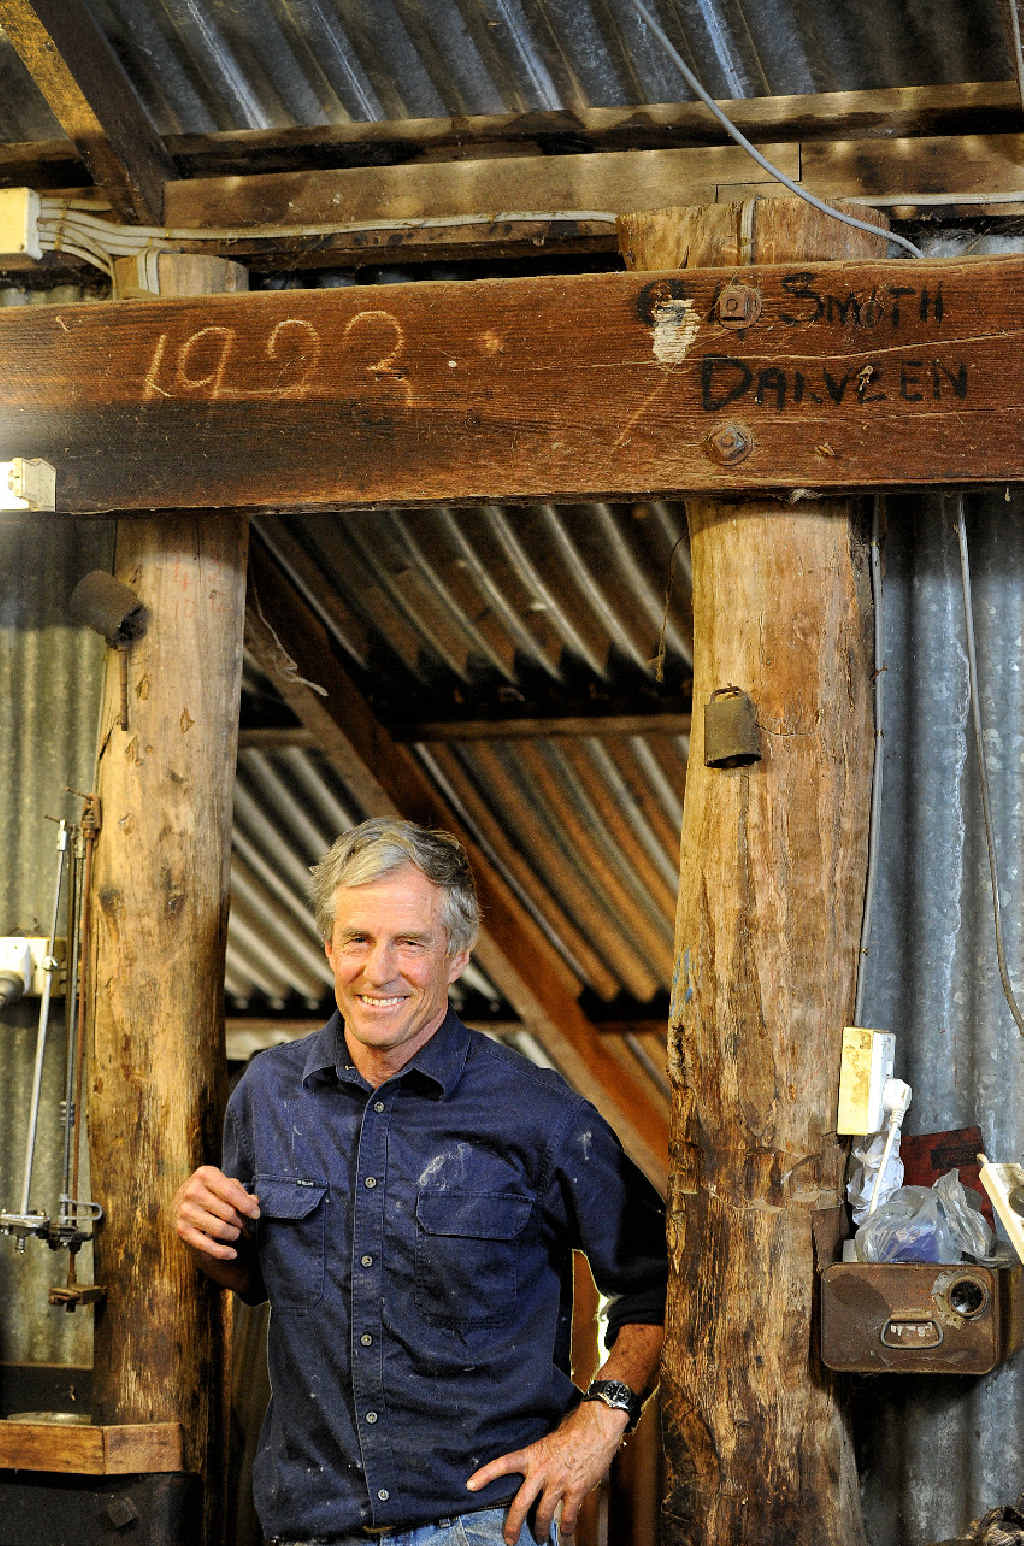 TRADITIONALIST: Gordon Smith stands proudly under the Oregon timber doorway in the shearing shed.